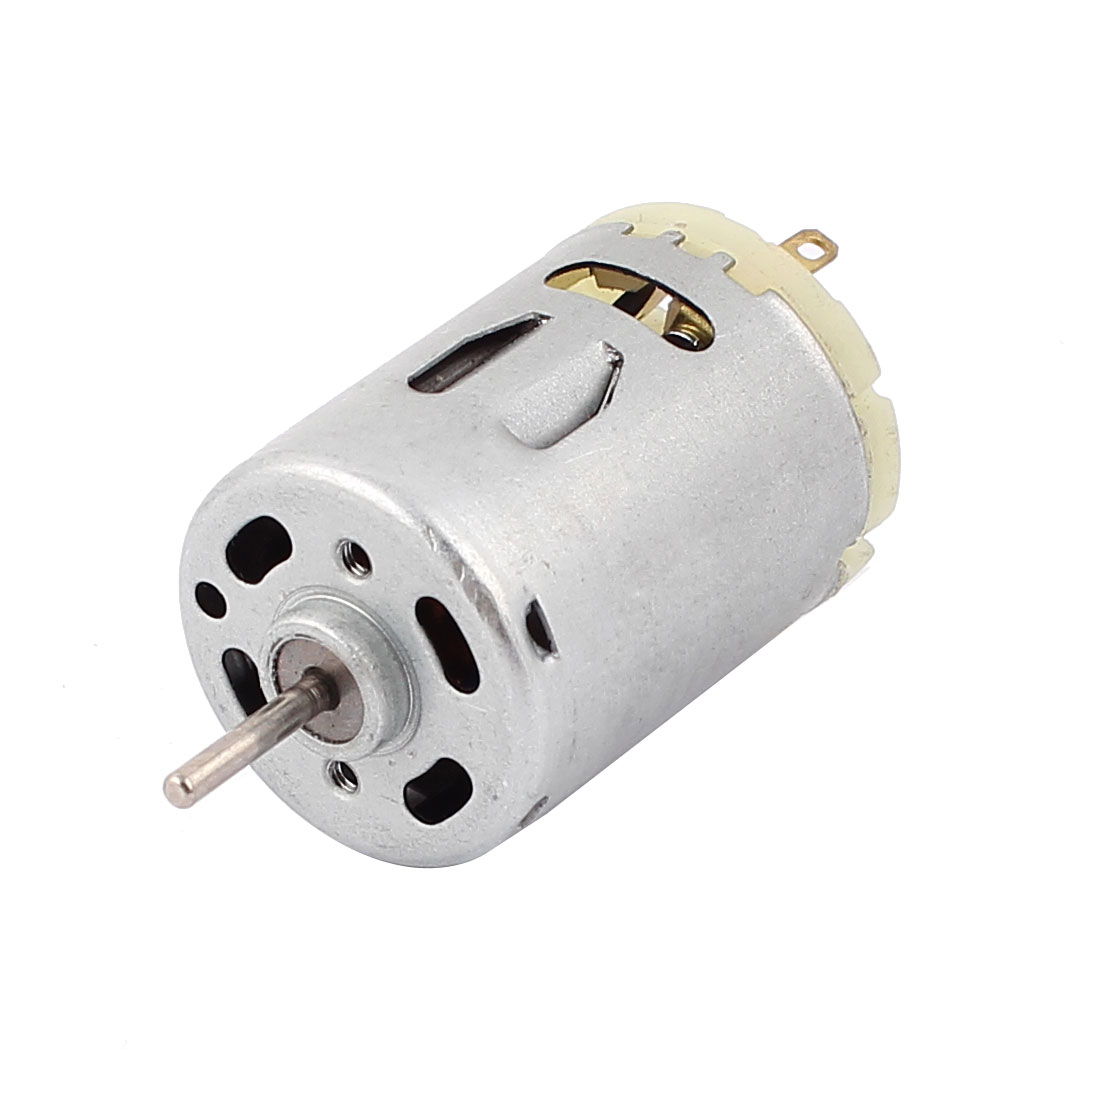 DC 12-24V 10000RPM 2.3mm Shaft Dia Magnetic Electric Motor Replacement